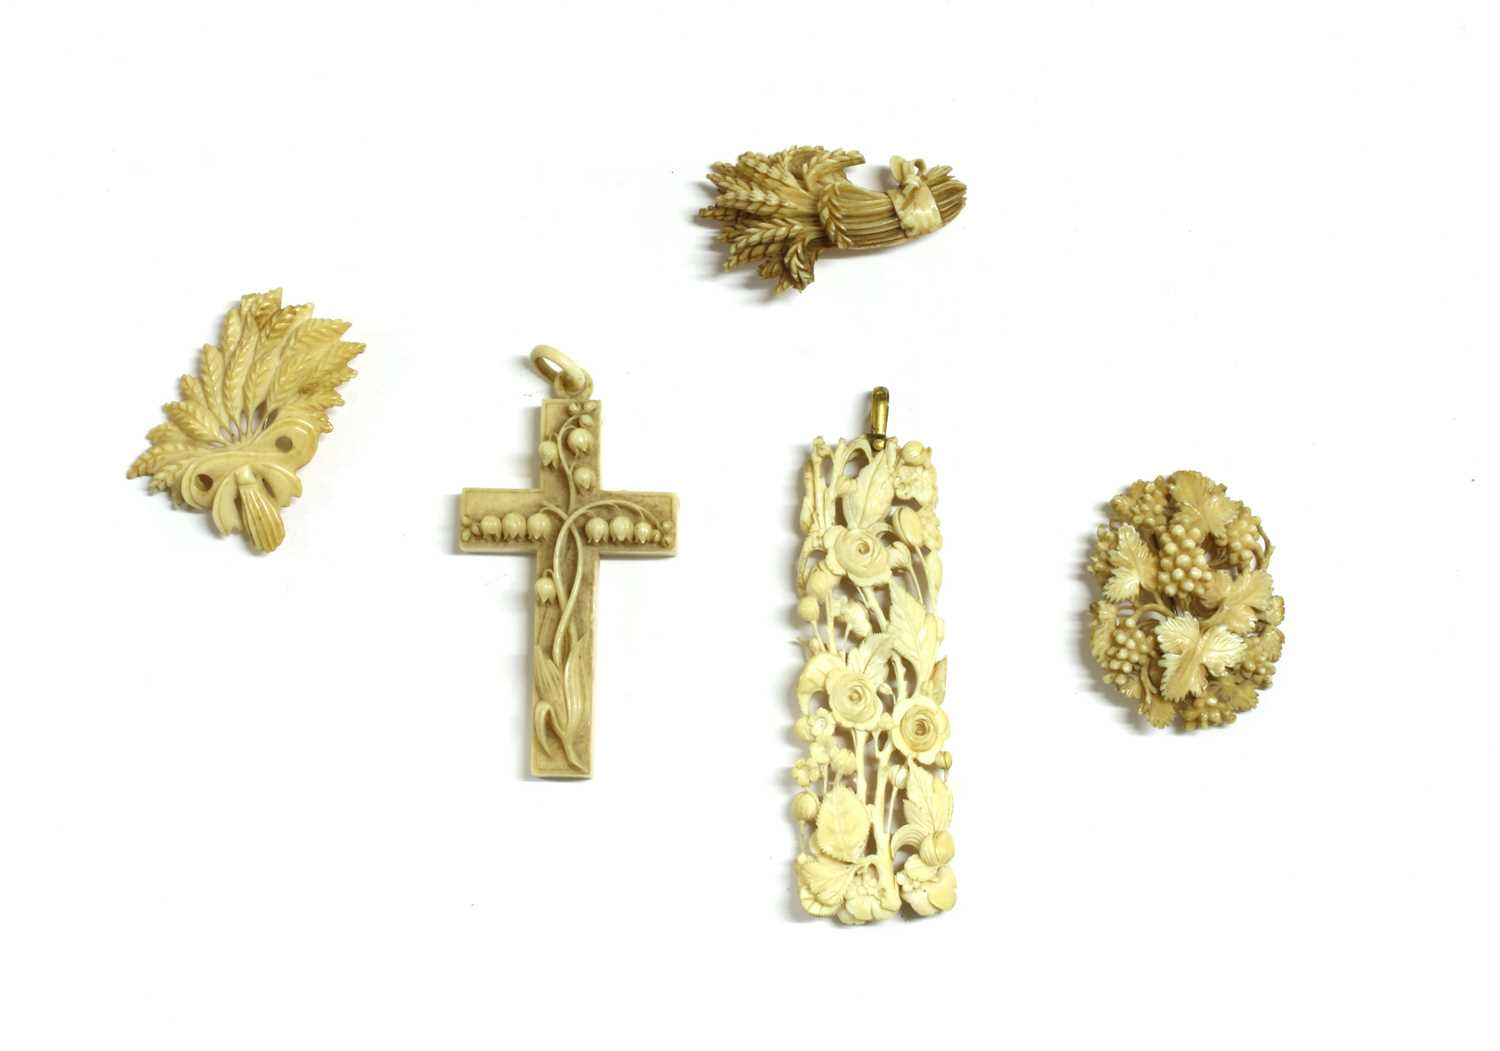 Lot 25 - A carved ivory cross